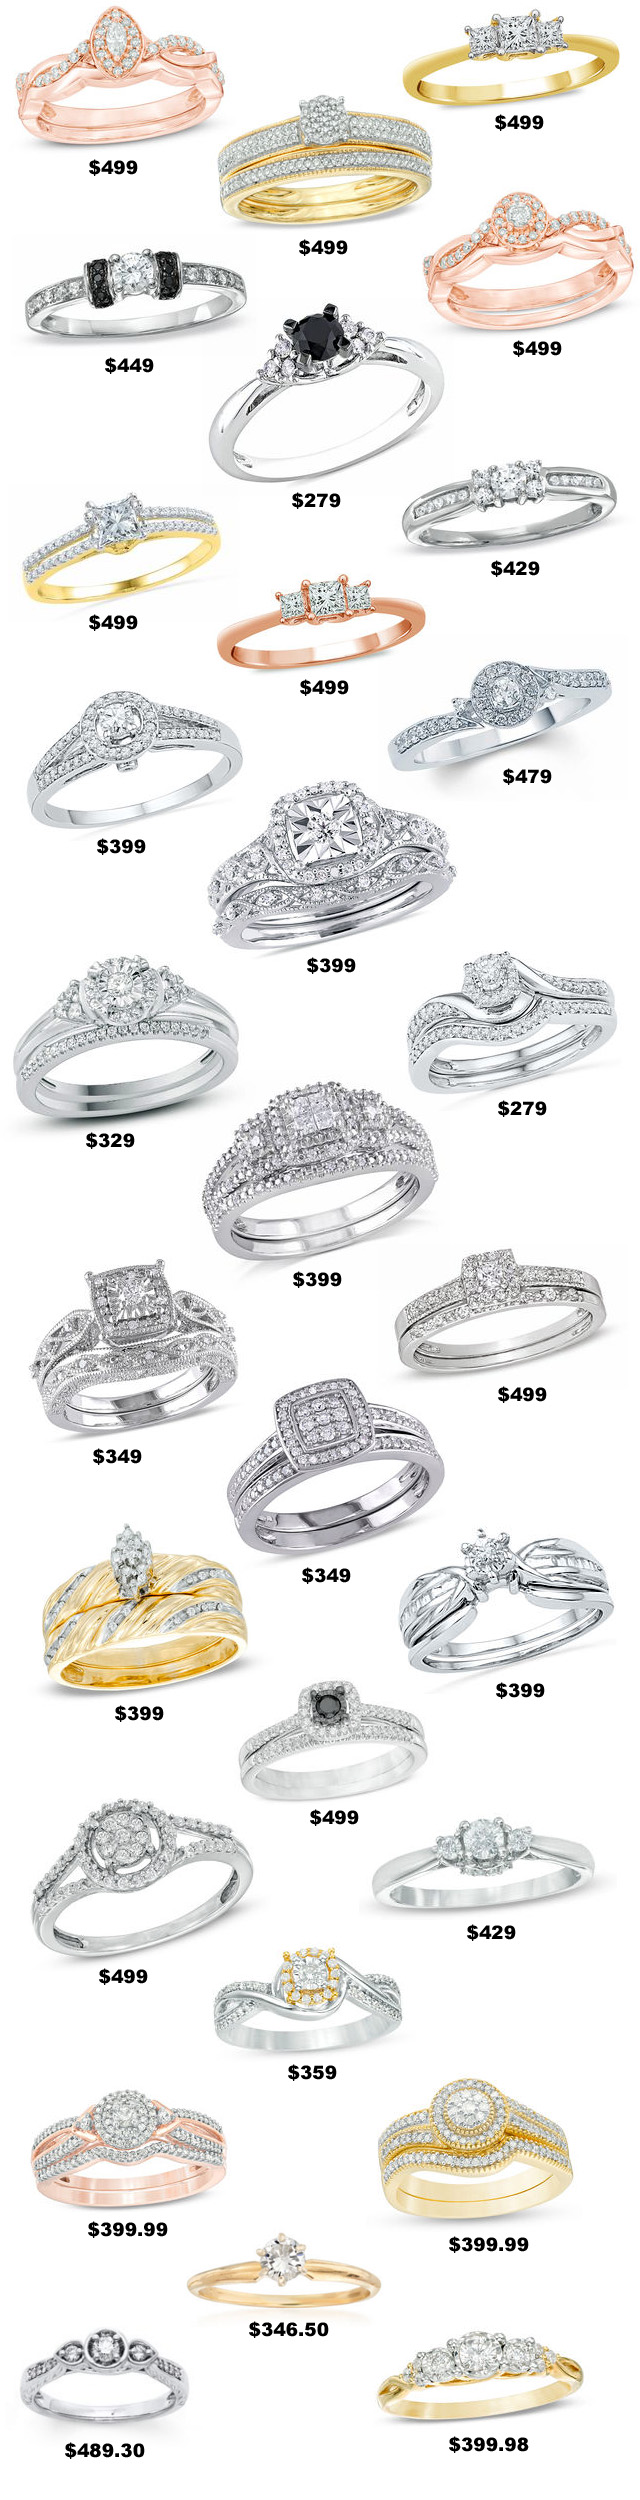 500 Dollar Diamond Rings